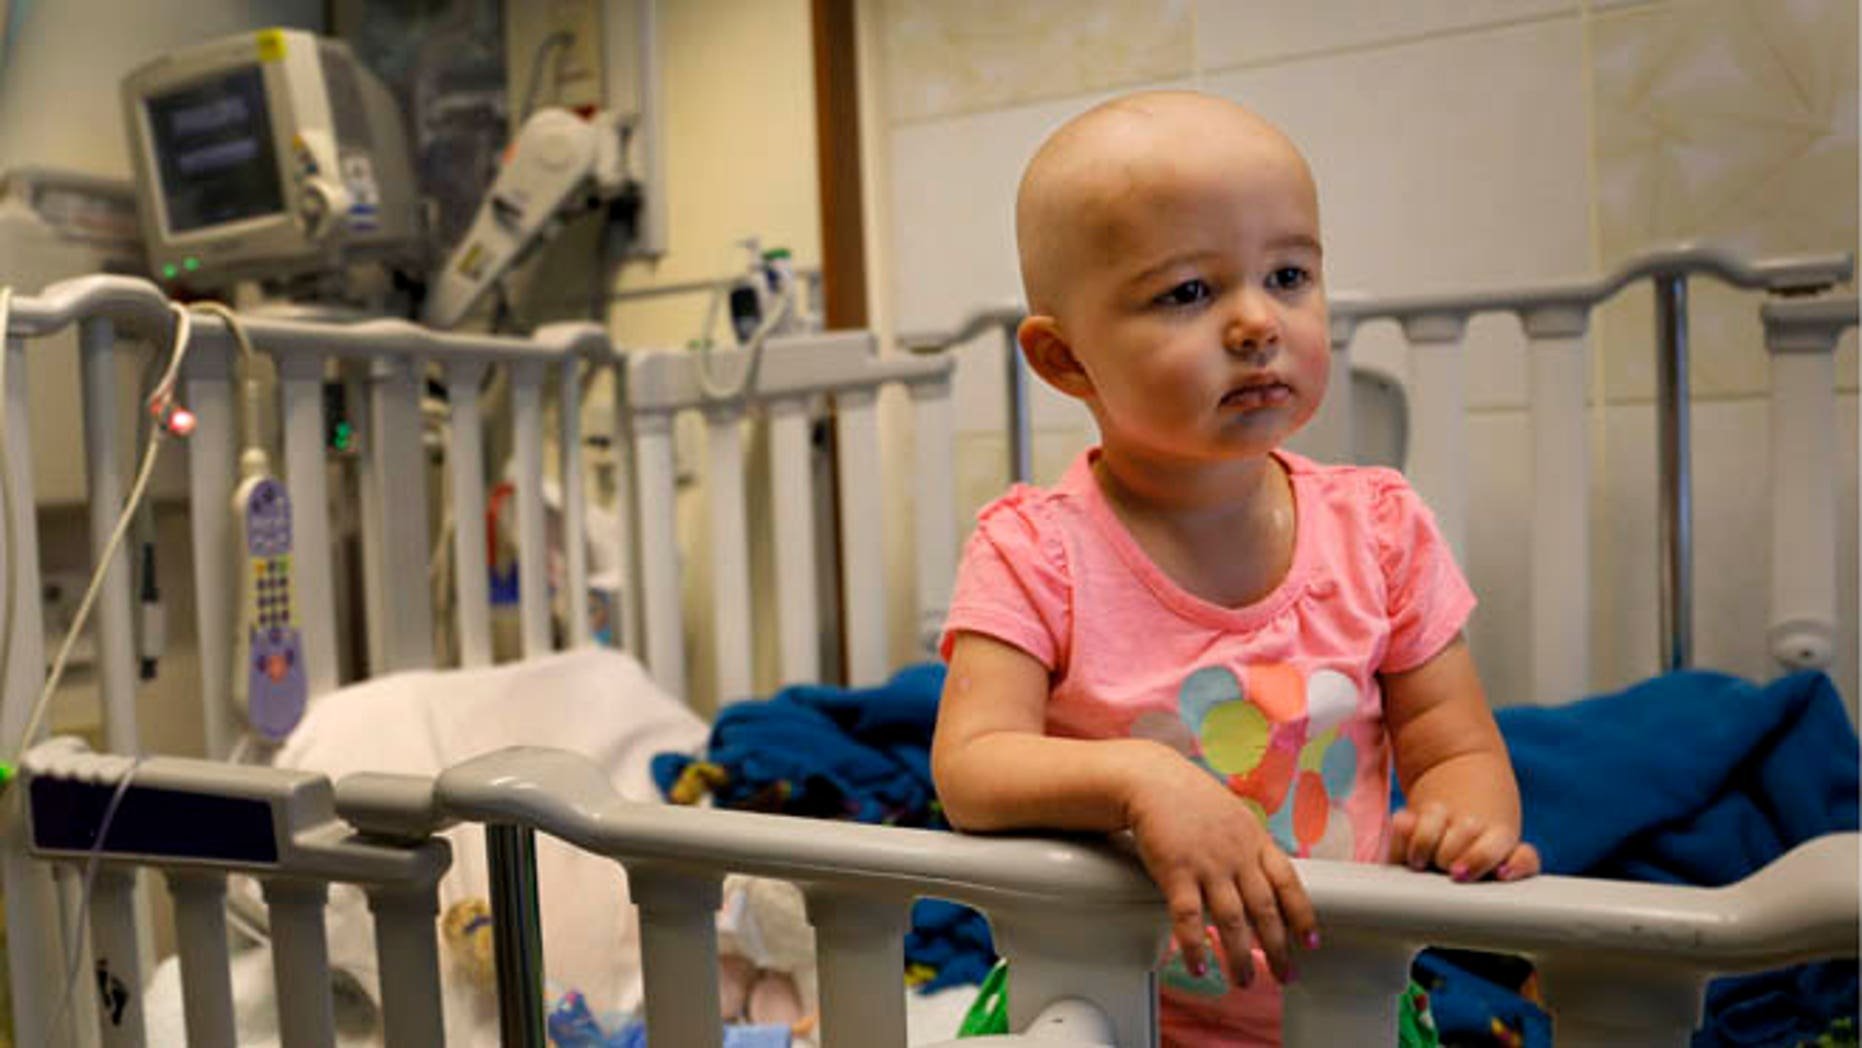 In this June 11, 2015 photo,Talia Pisano stands in her bed at Lurie Children's Hospital in Chicago. Talia is getting tough treatment for kidney cancer that spread to her brain. She's also getting a chance at having babies of her own someday. To battle infertility sometimes caused by cancer treatment, some childrenâs hospitals are trying a futuristic approach: removing and freezing immature ovary and testes tissue, with hopes of being able to put it back when patients reach adulthood and want to start families. (AP Photo/Christian K. Lee)